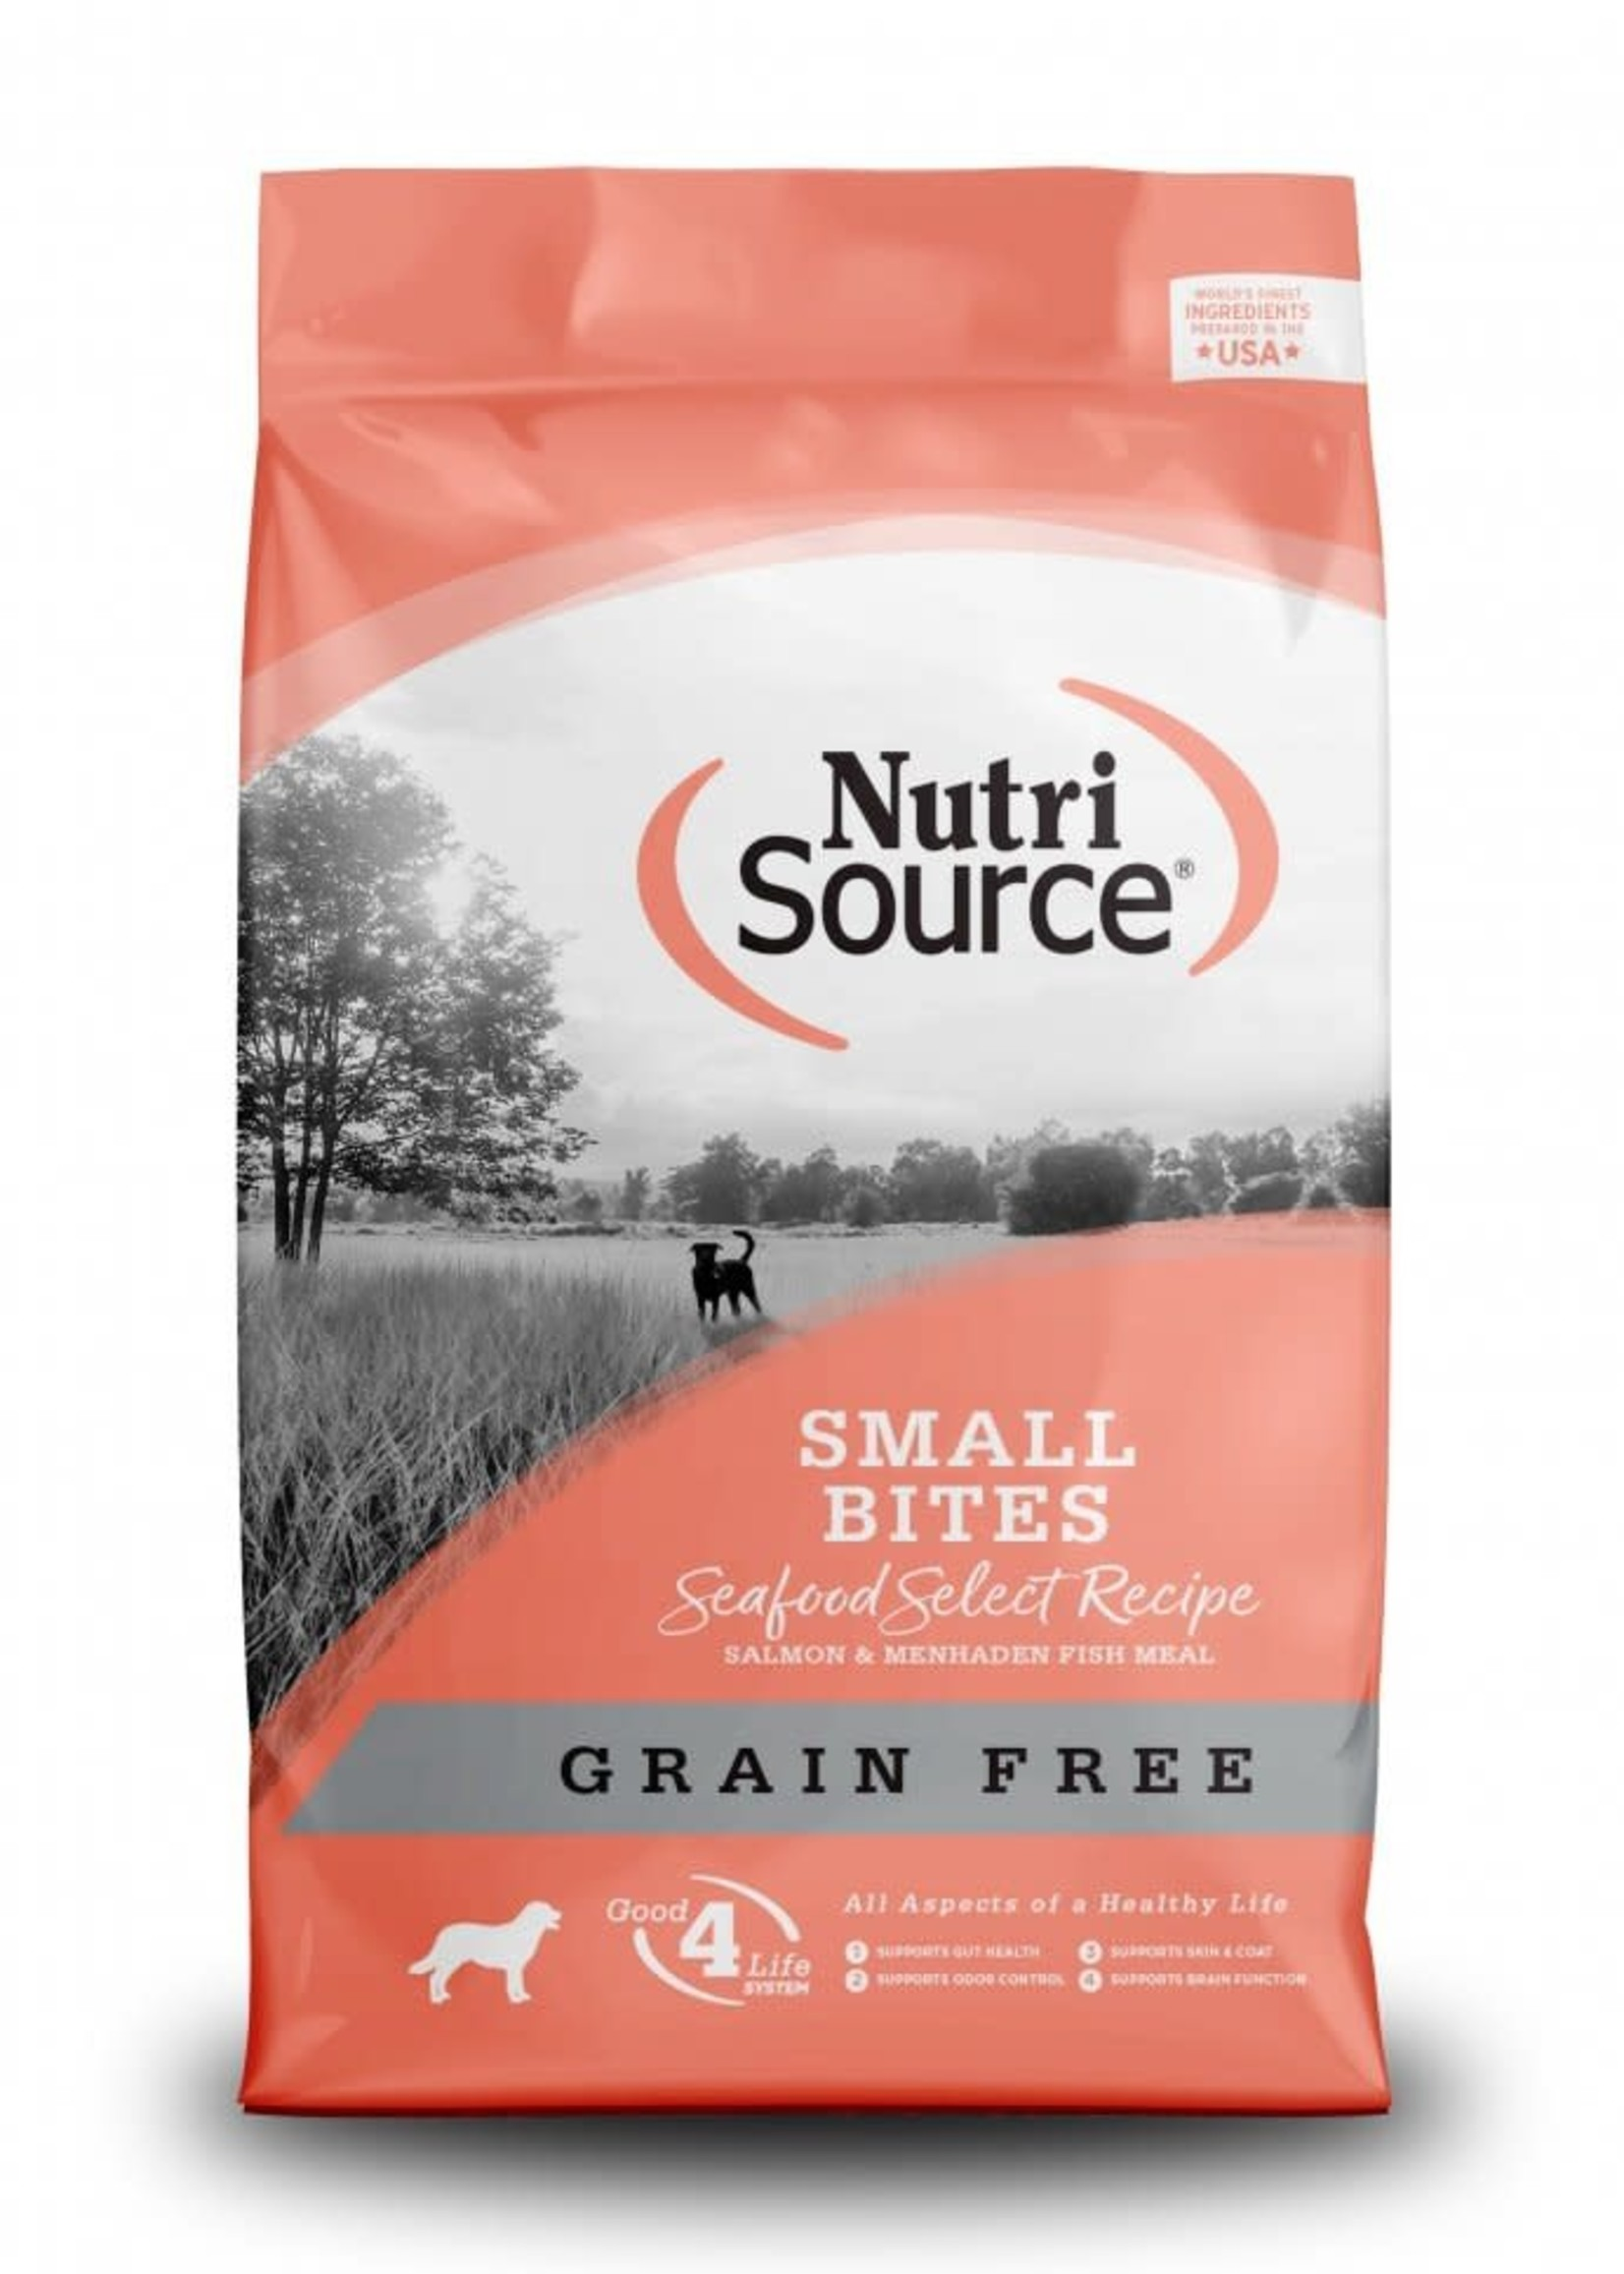 Nutrisource Nutrisource Grain-Free Seafood Select Small Bites Dry Dog Food 5lbs